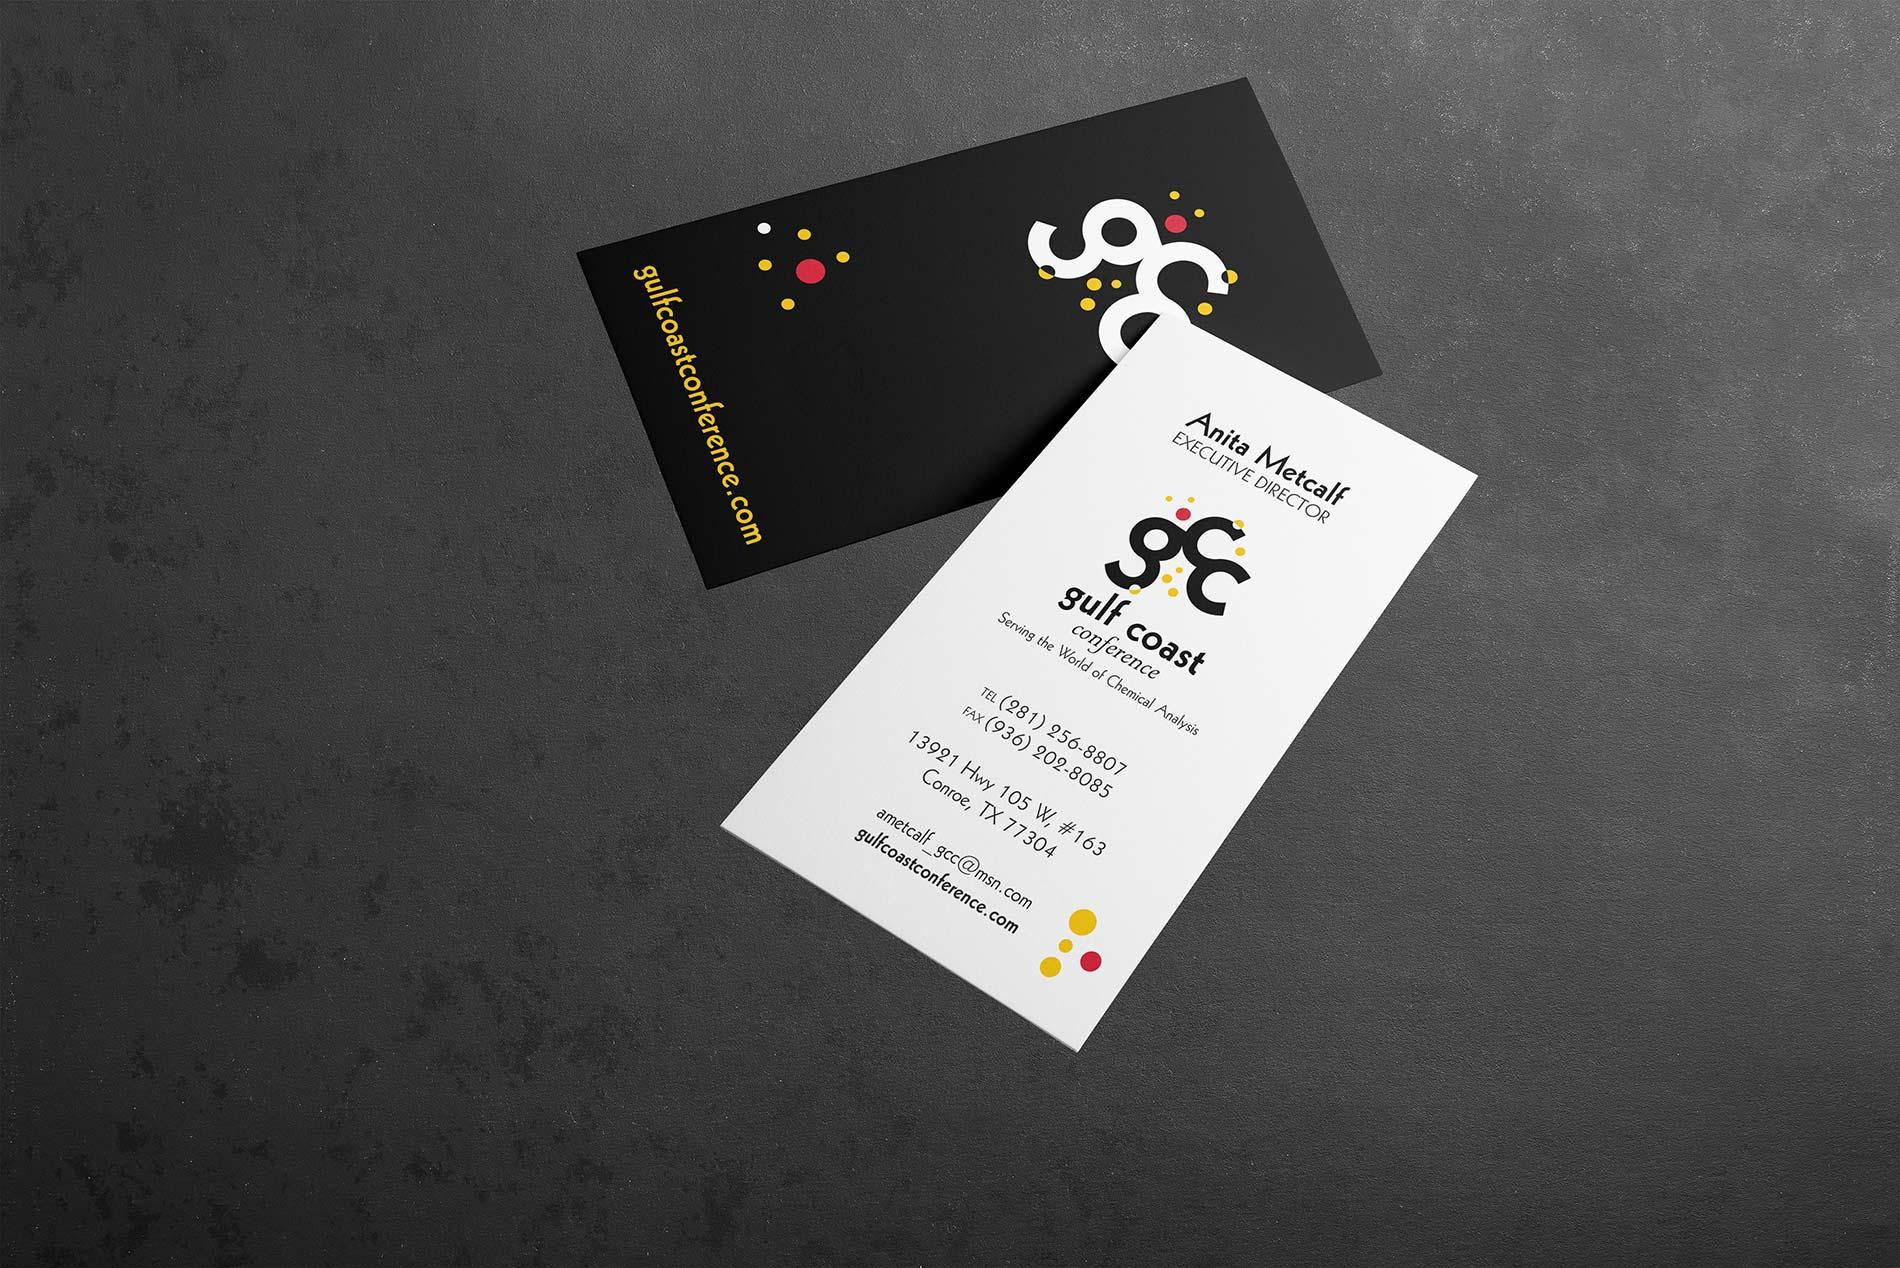 Gulf Coast Conference business card mockup